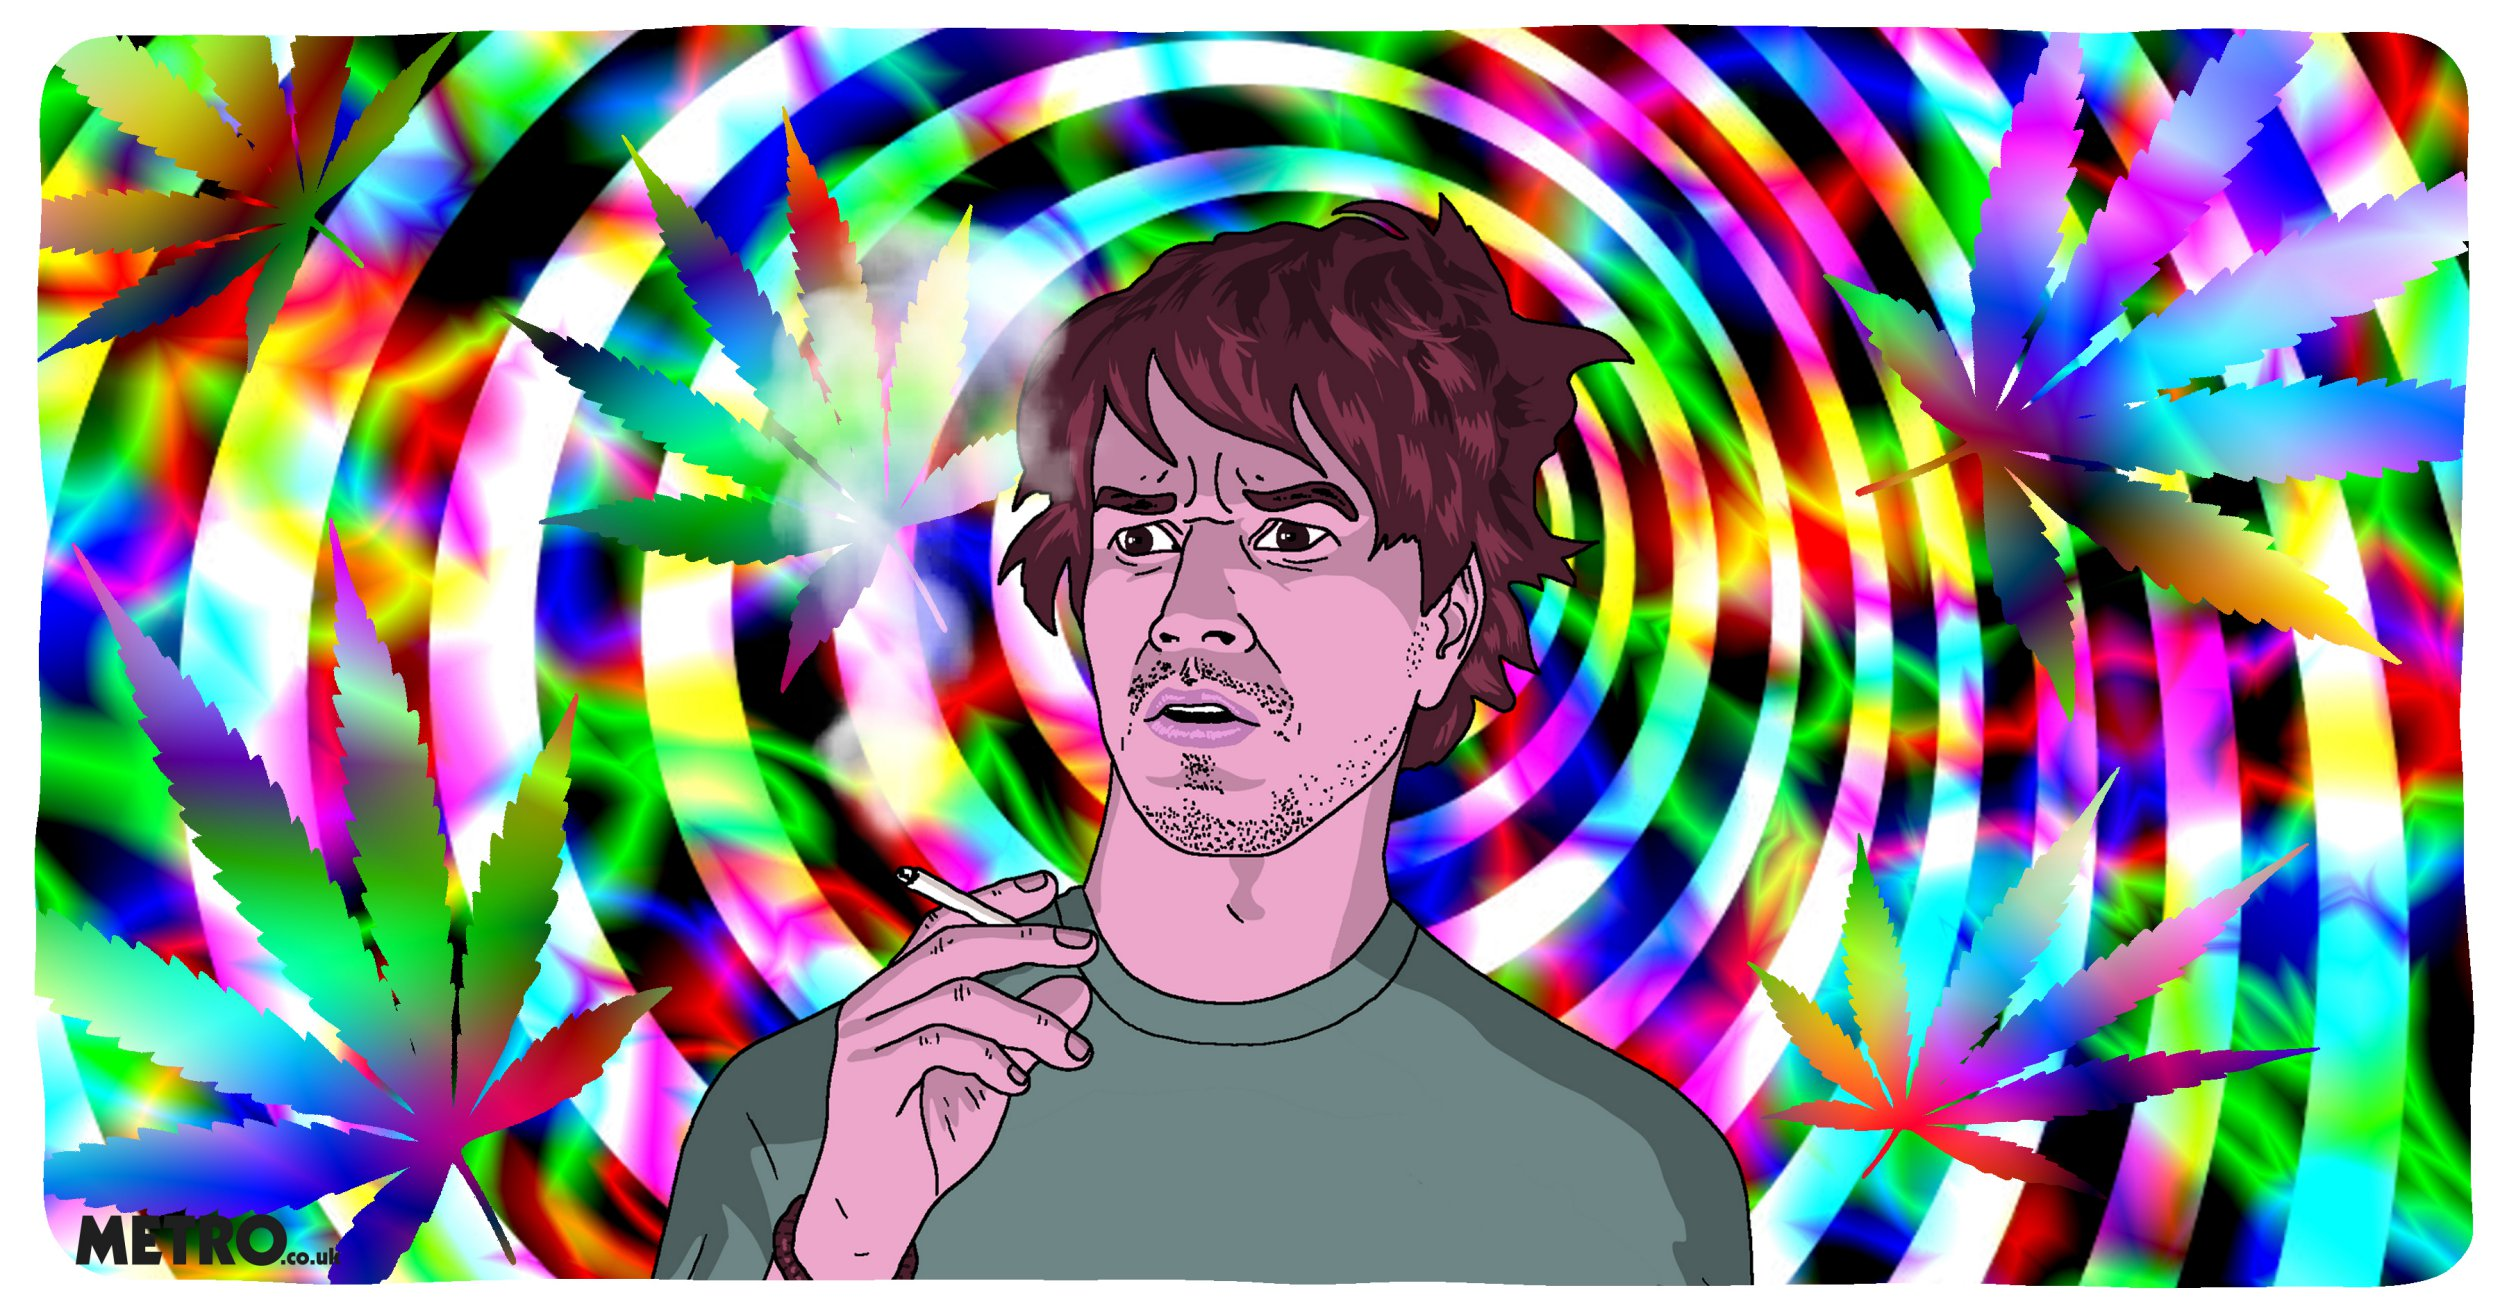 Metro Illustrations Metro Illustration How to tell if you're at risk of psychosis from using cannabis Dave Anderson for Metro.co.uk